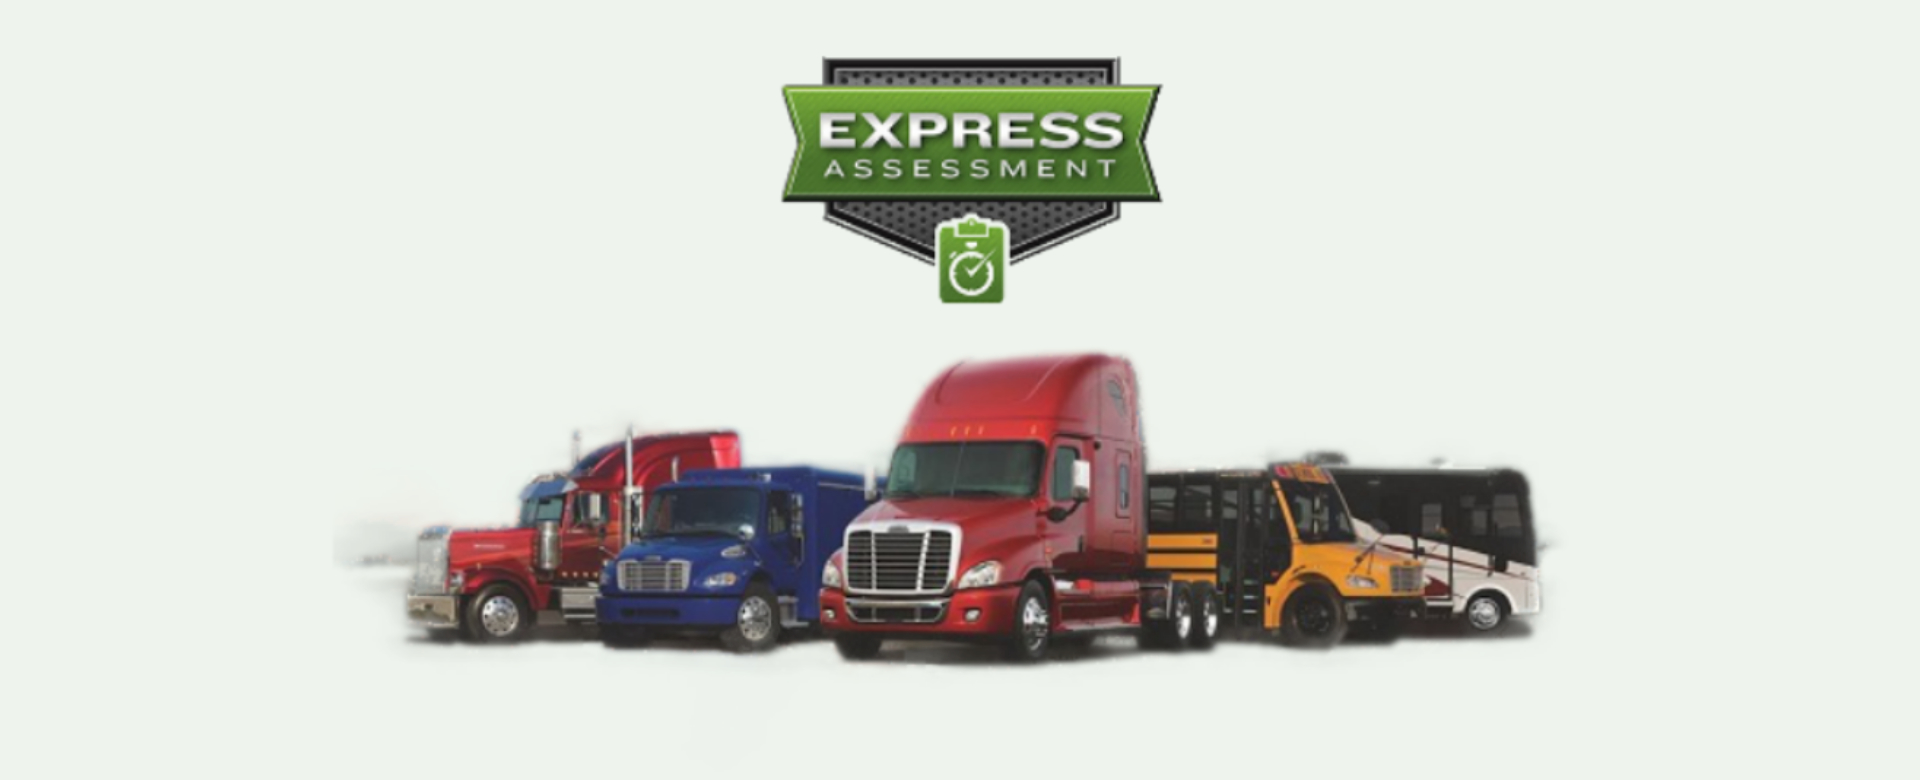 Daimler Trucks line up. Wetsern Star, Freightliner, Thomas Built Bus and more. Plus Express Assessment